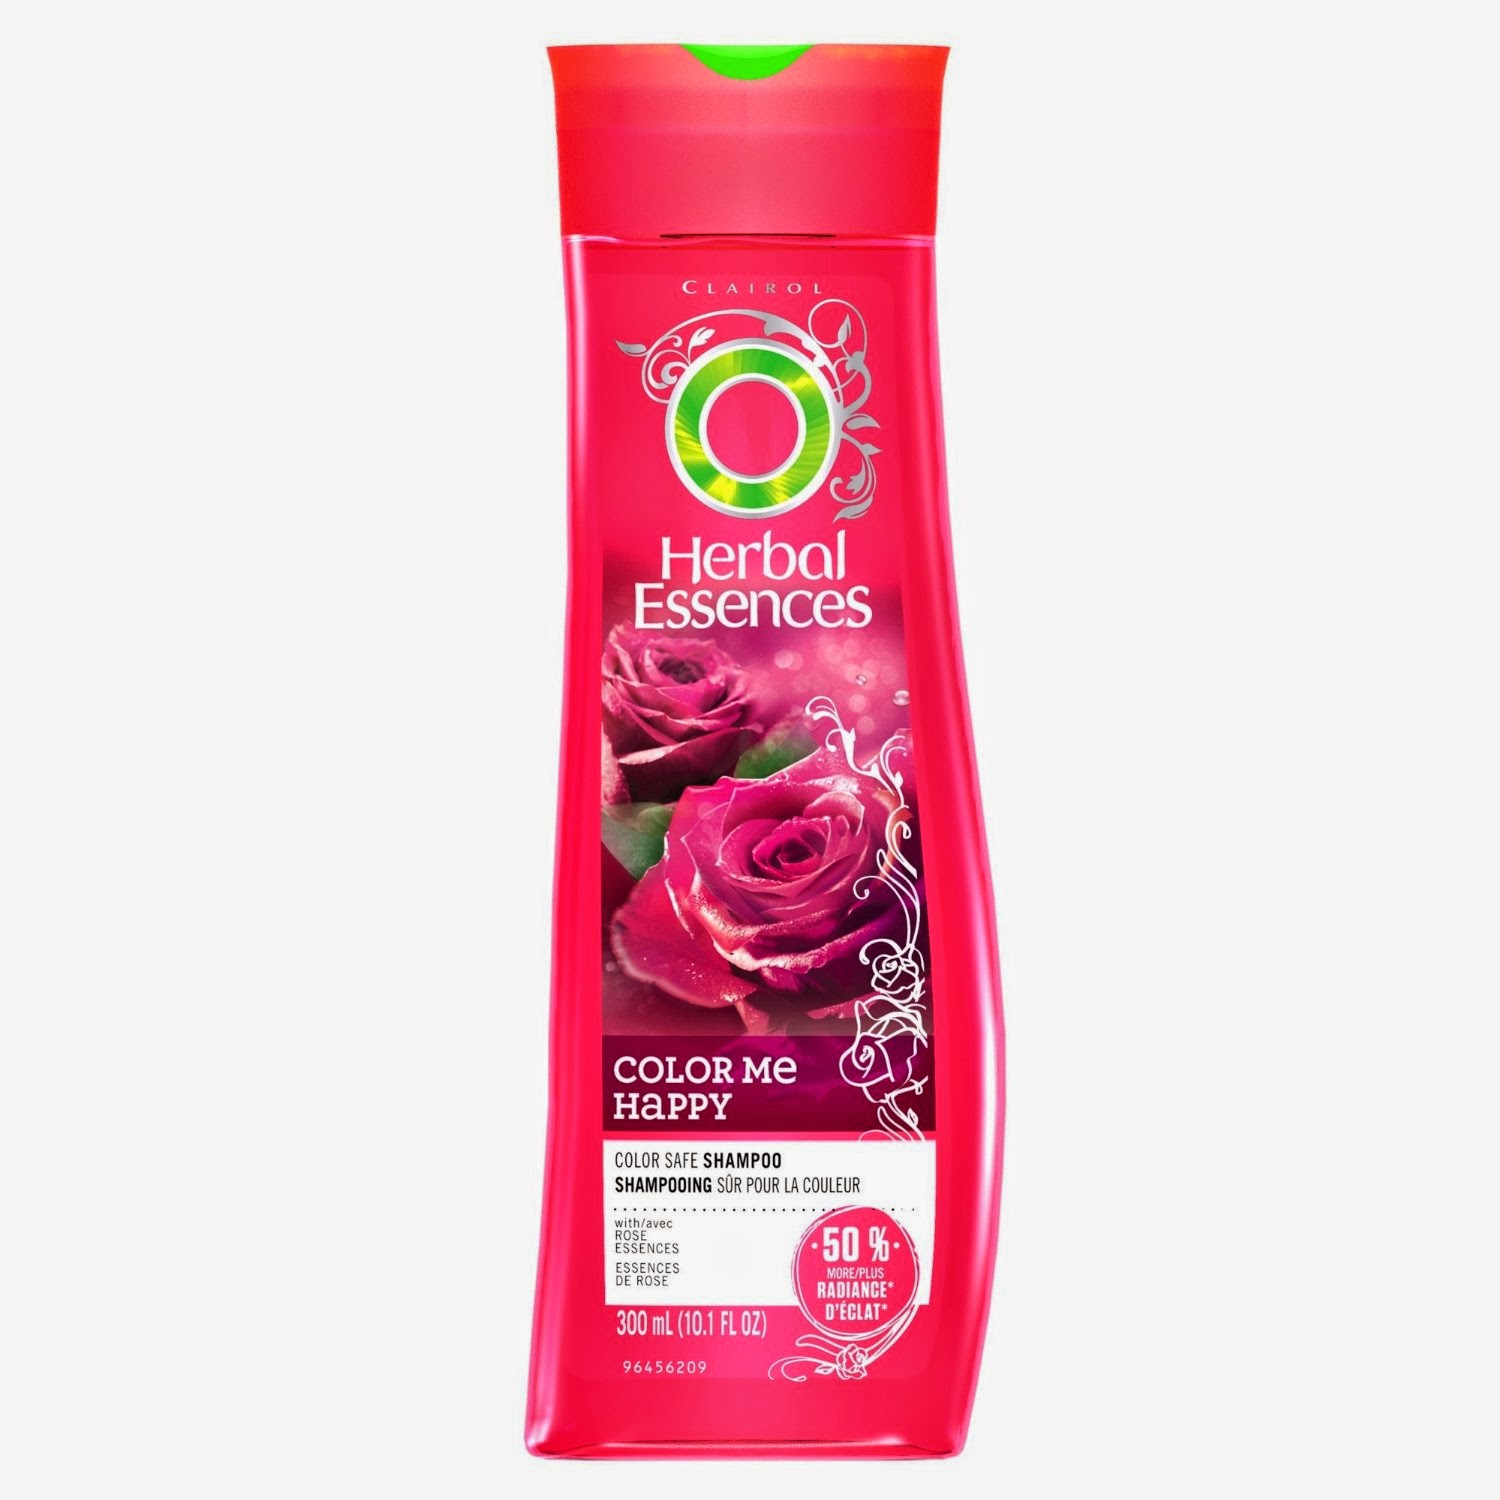 Herbal Essences Hair Color